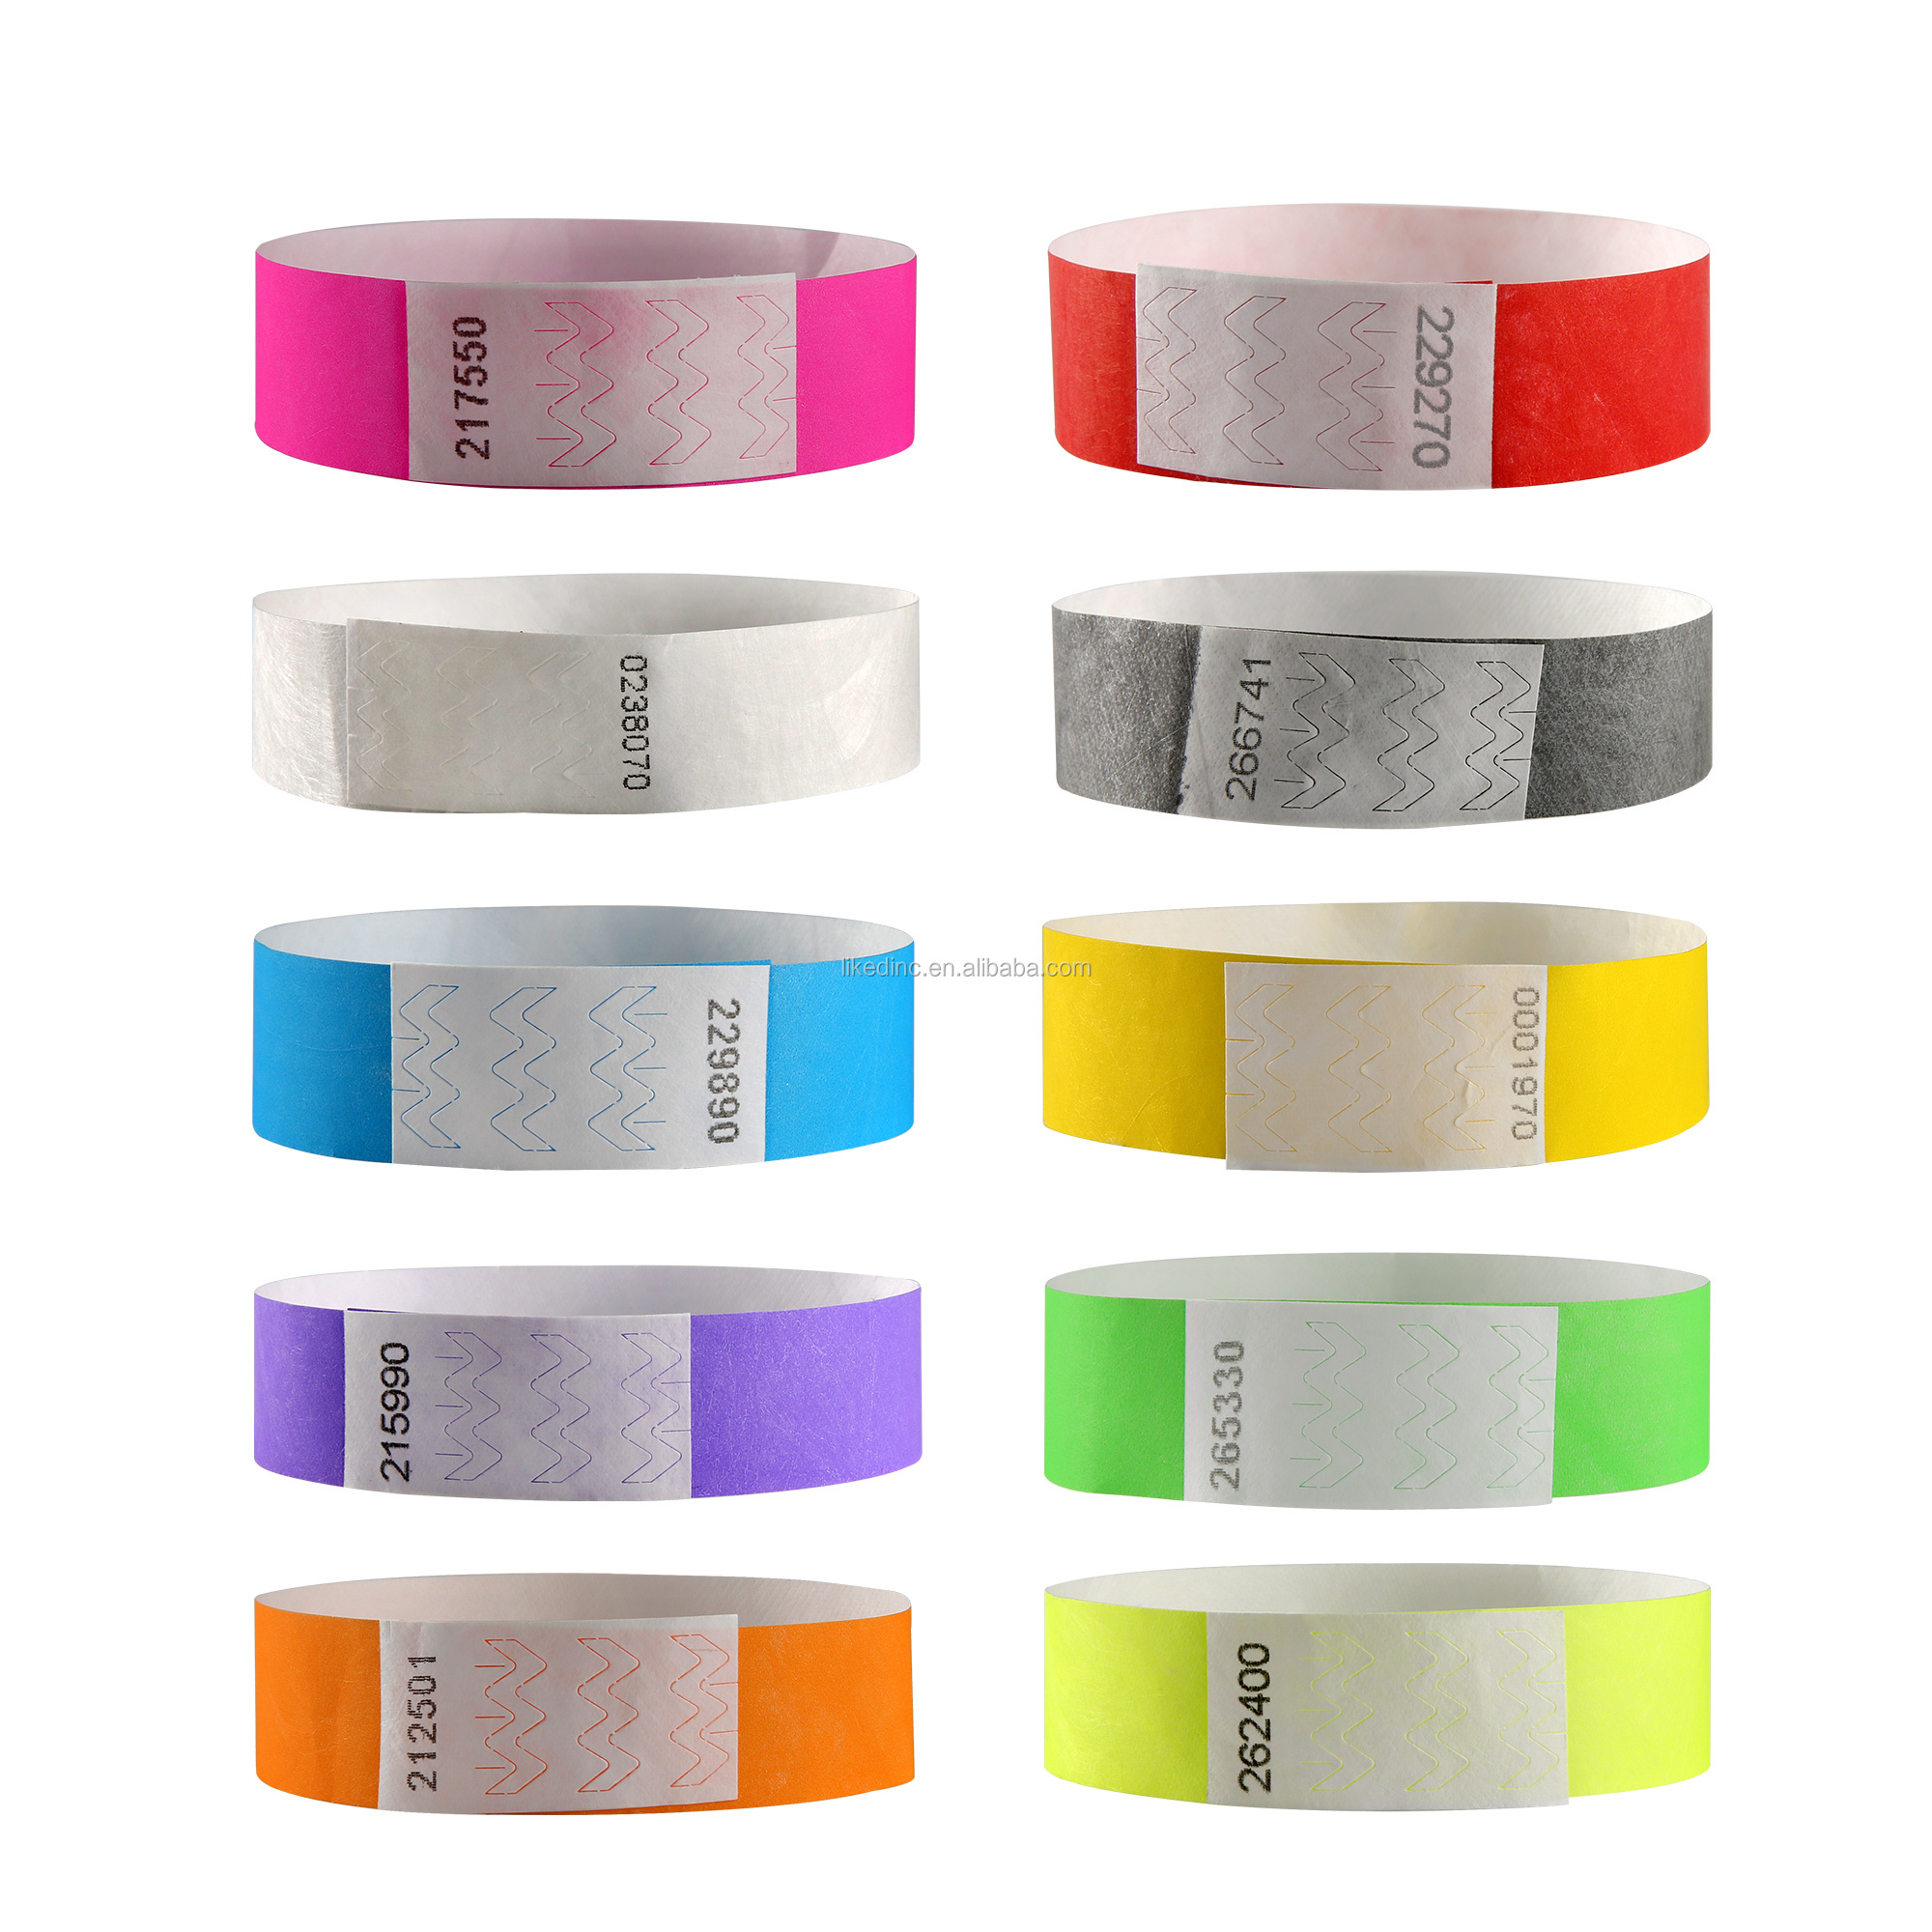 High class colorful event bracelets tyvek printing label wristband for all festival